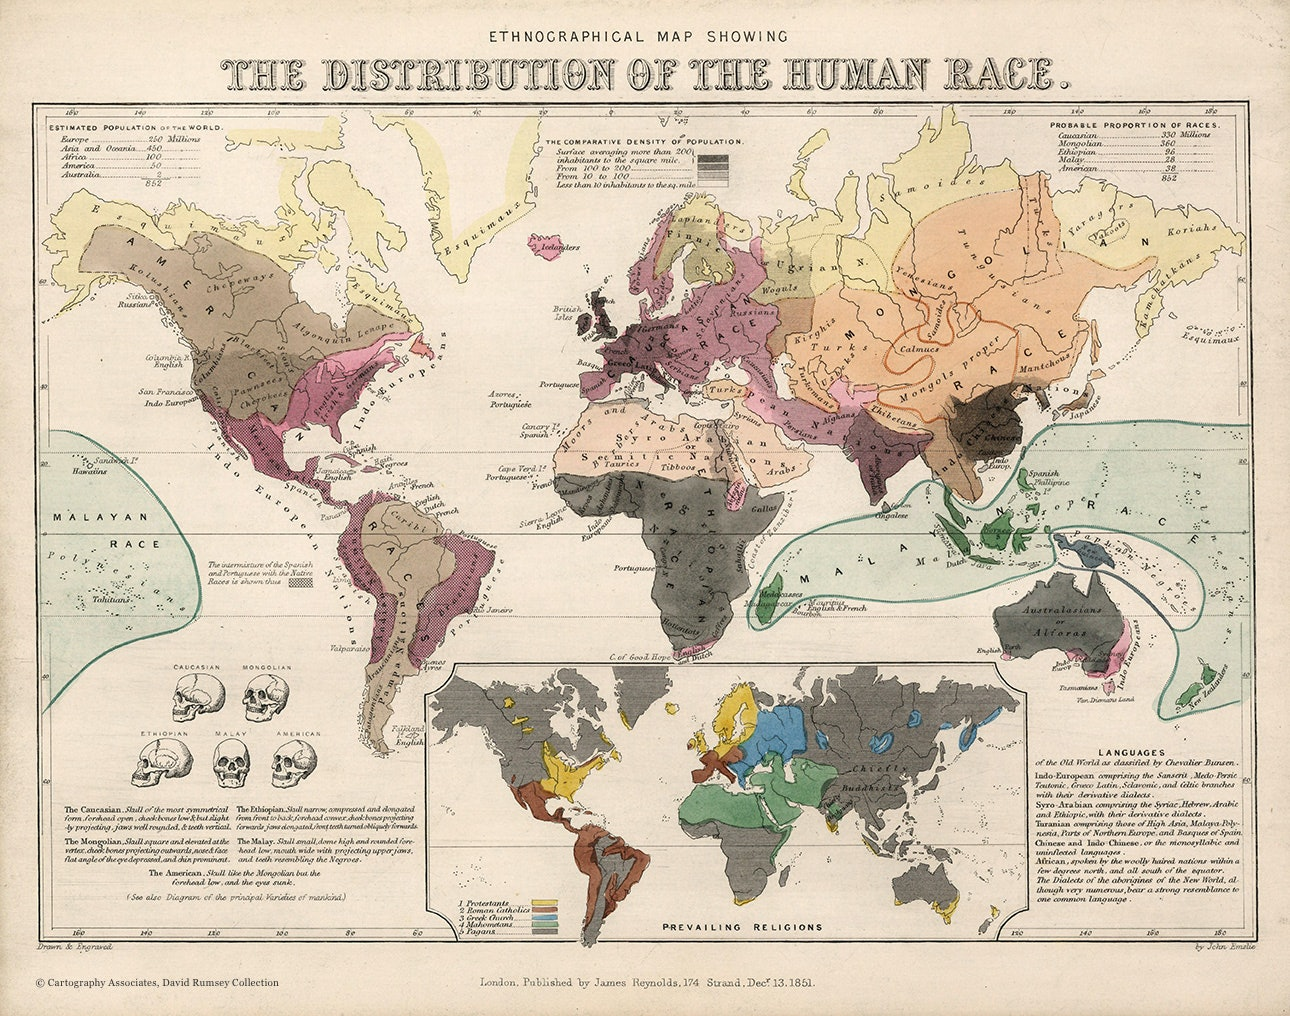 Ethnographical-map-showing-the-distribution-of-the-human-race